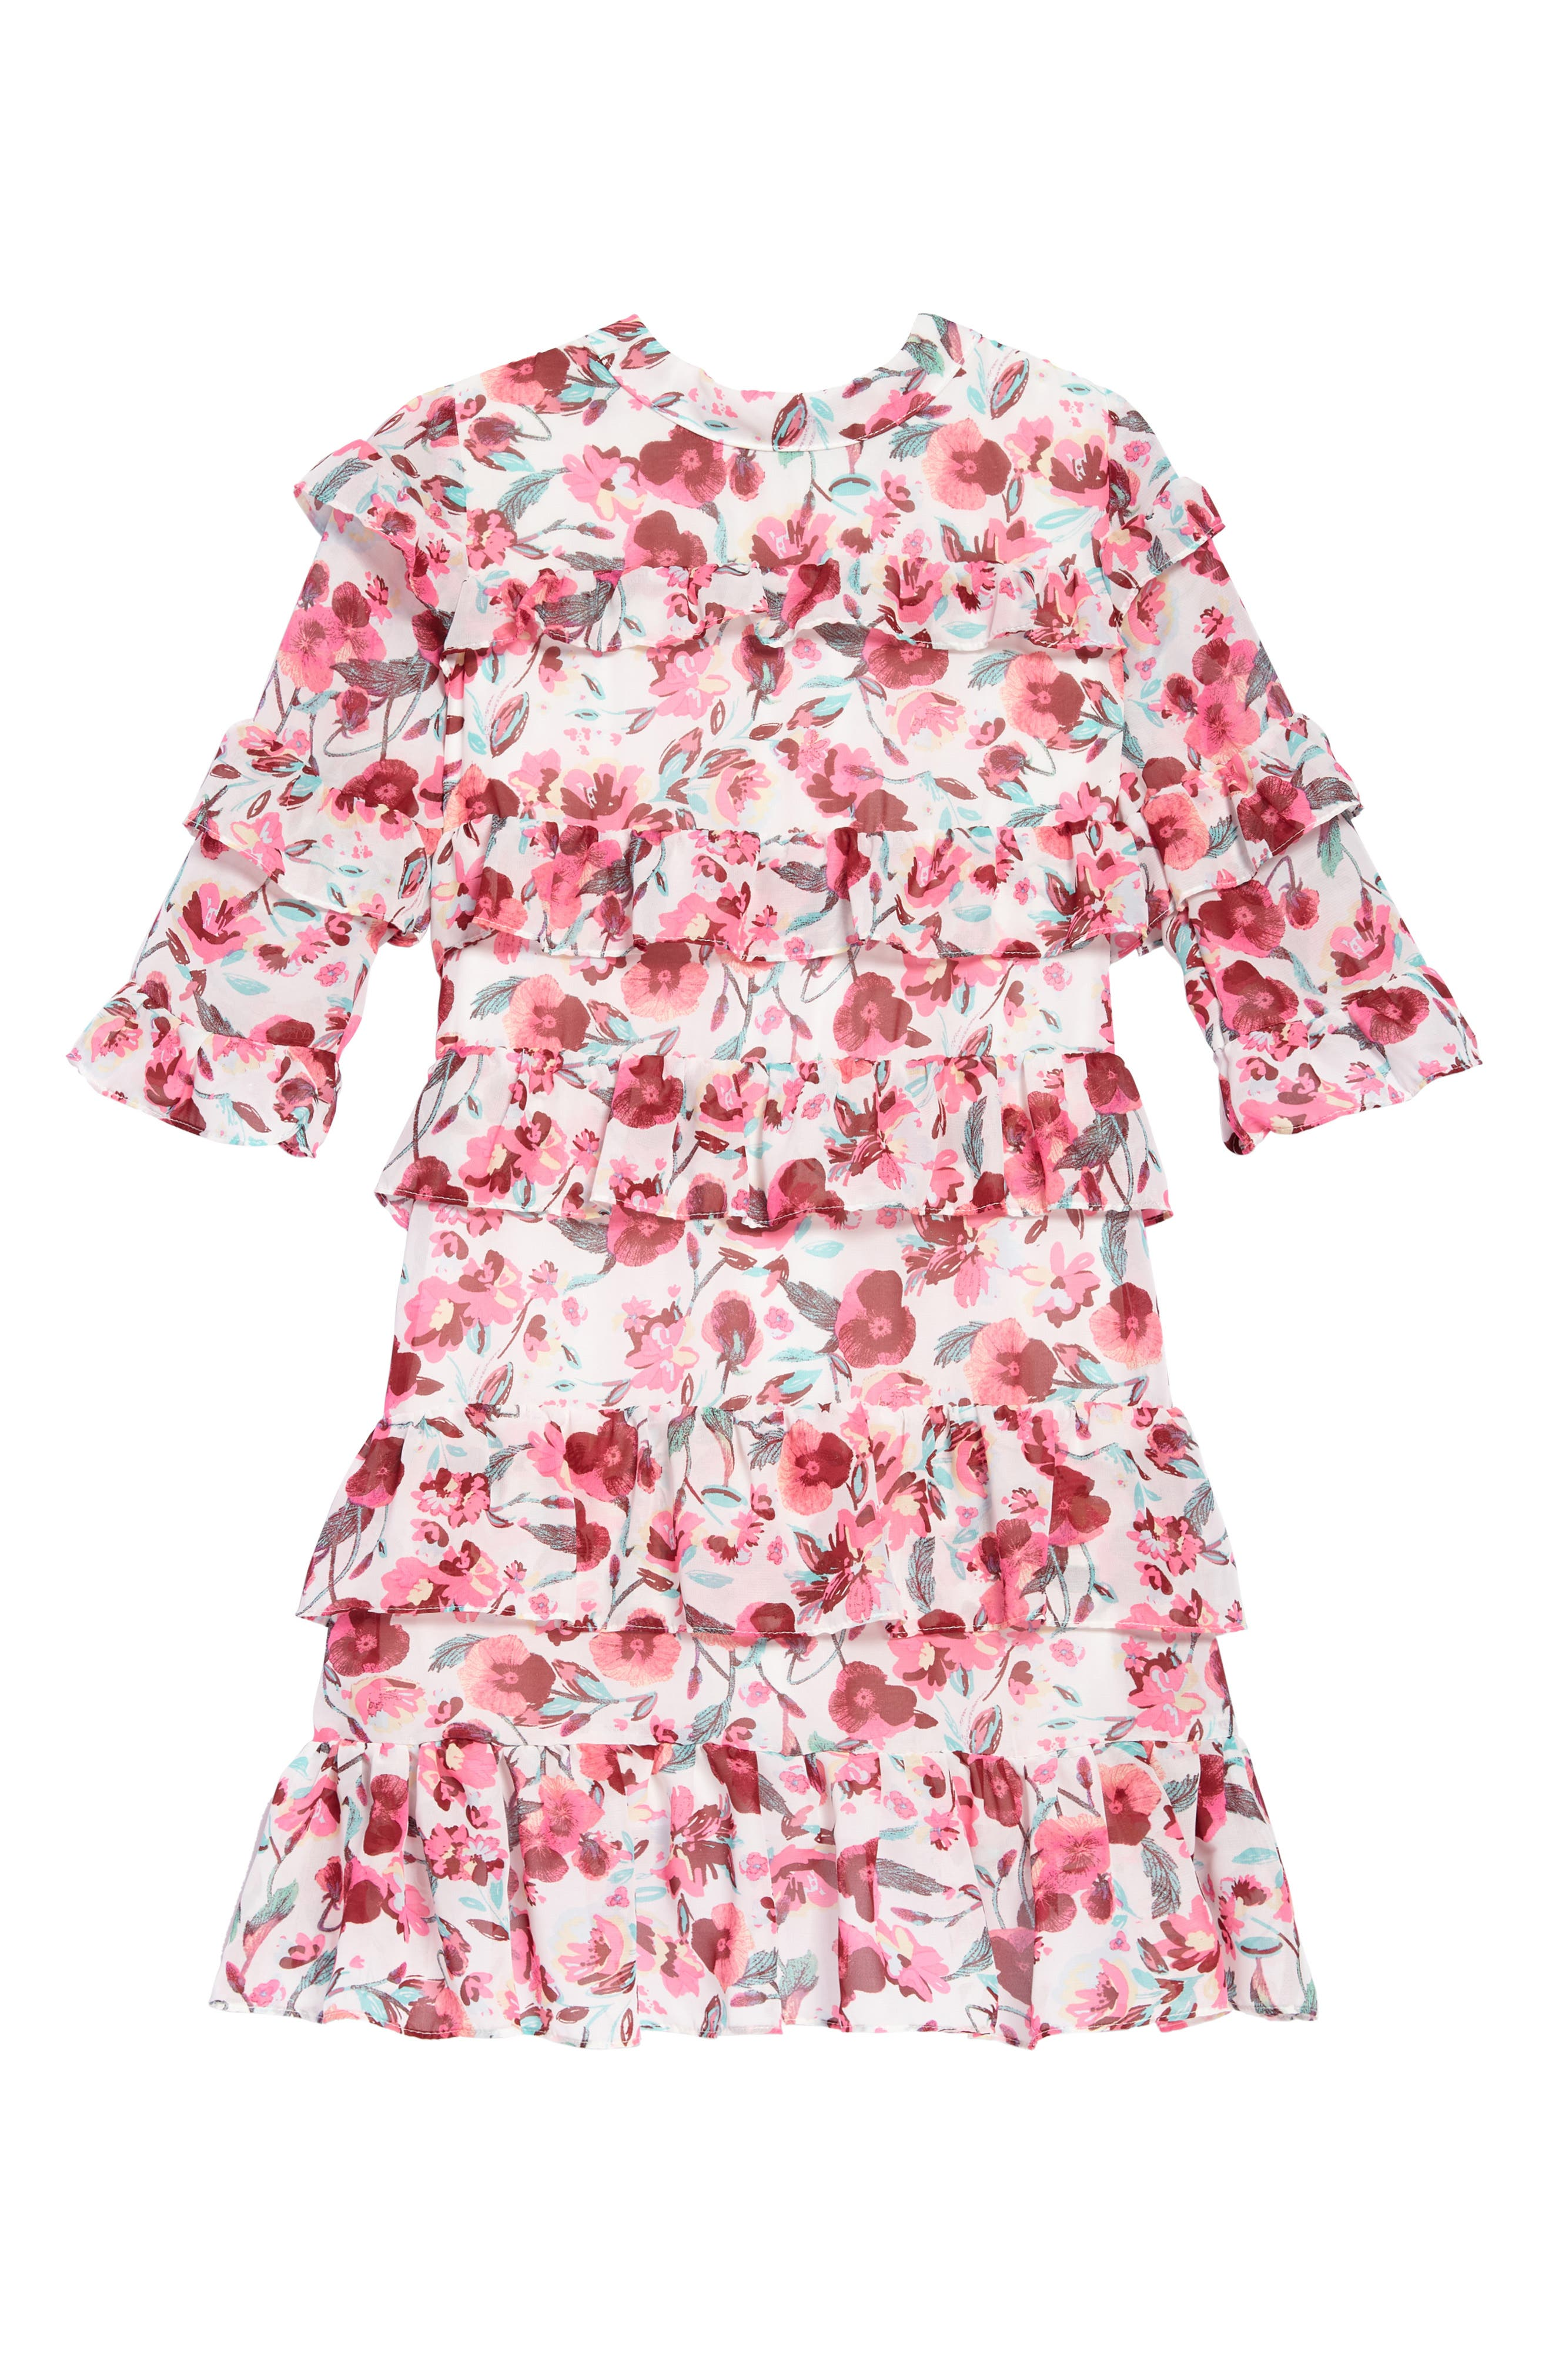 Image of AVA AND YELLY Tiered Ruffle Dress